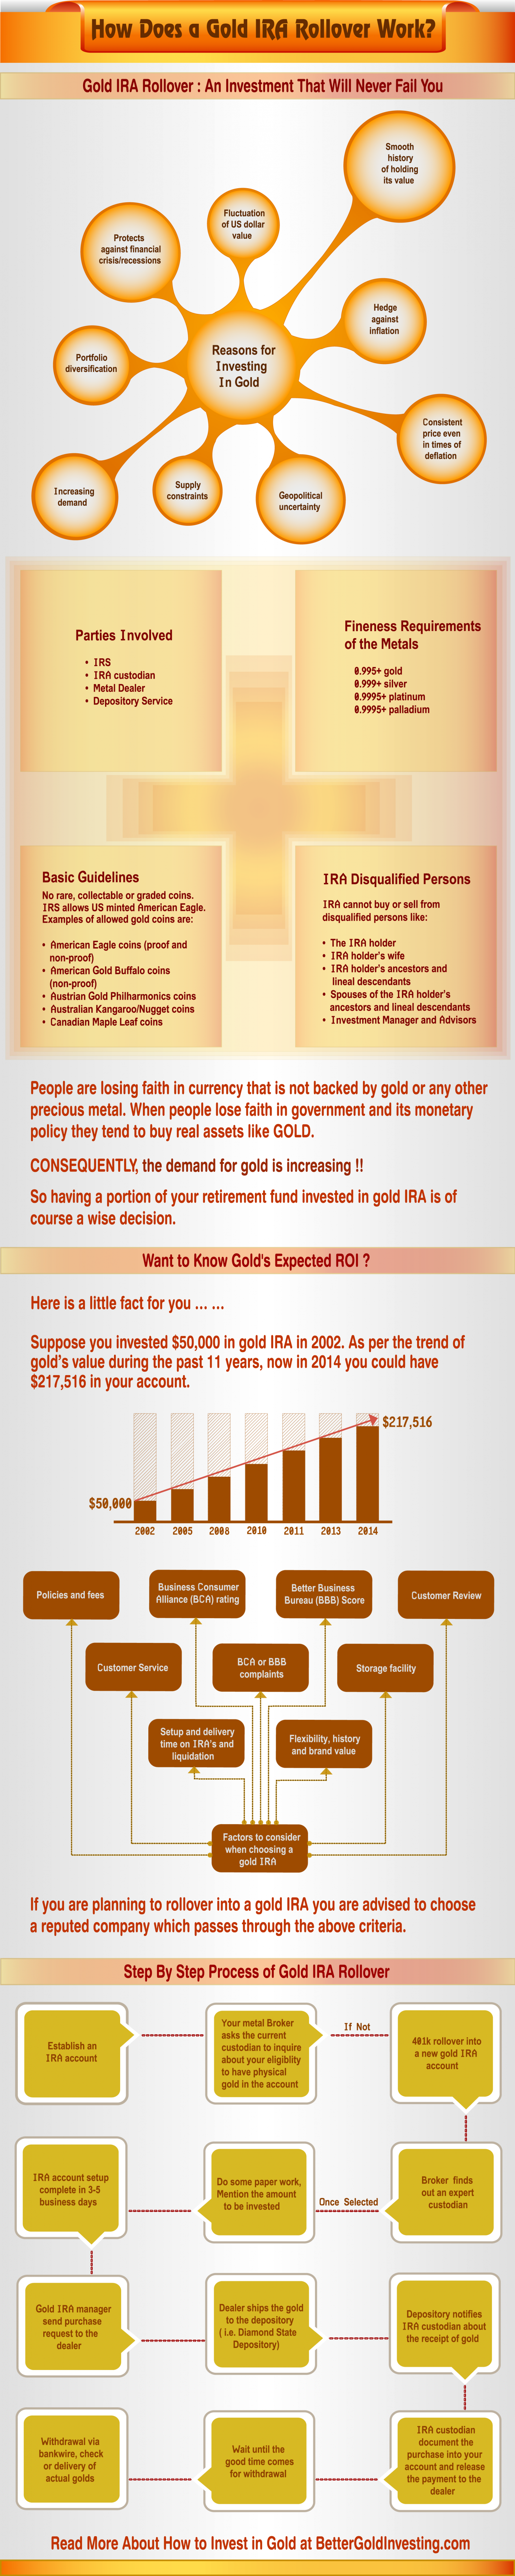 How does a gold ira rollover works Infographic